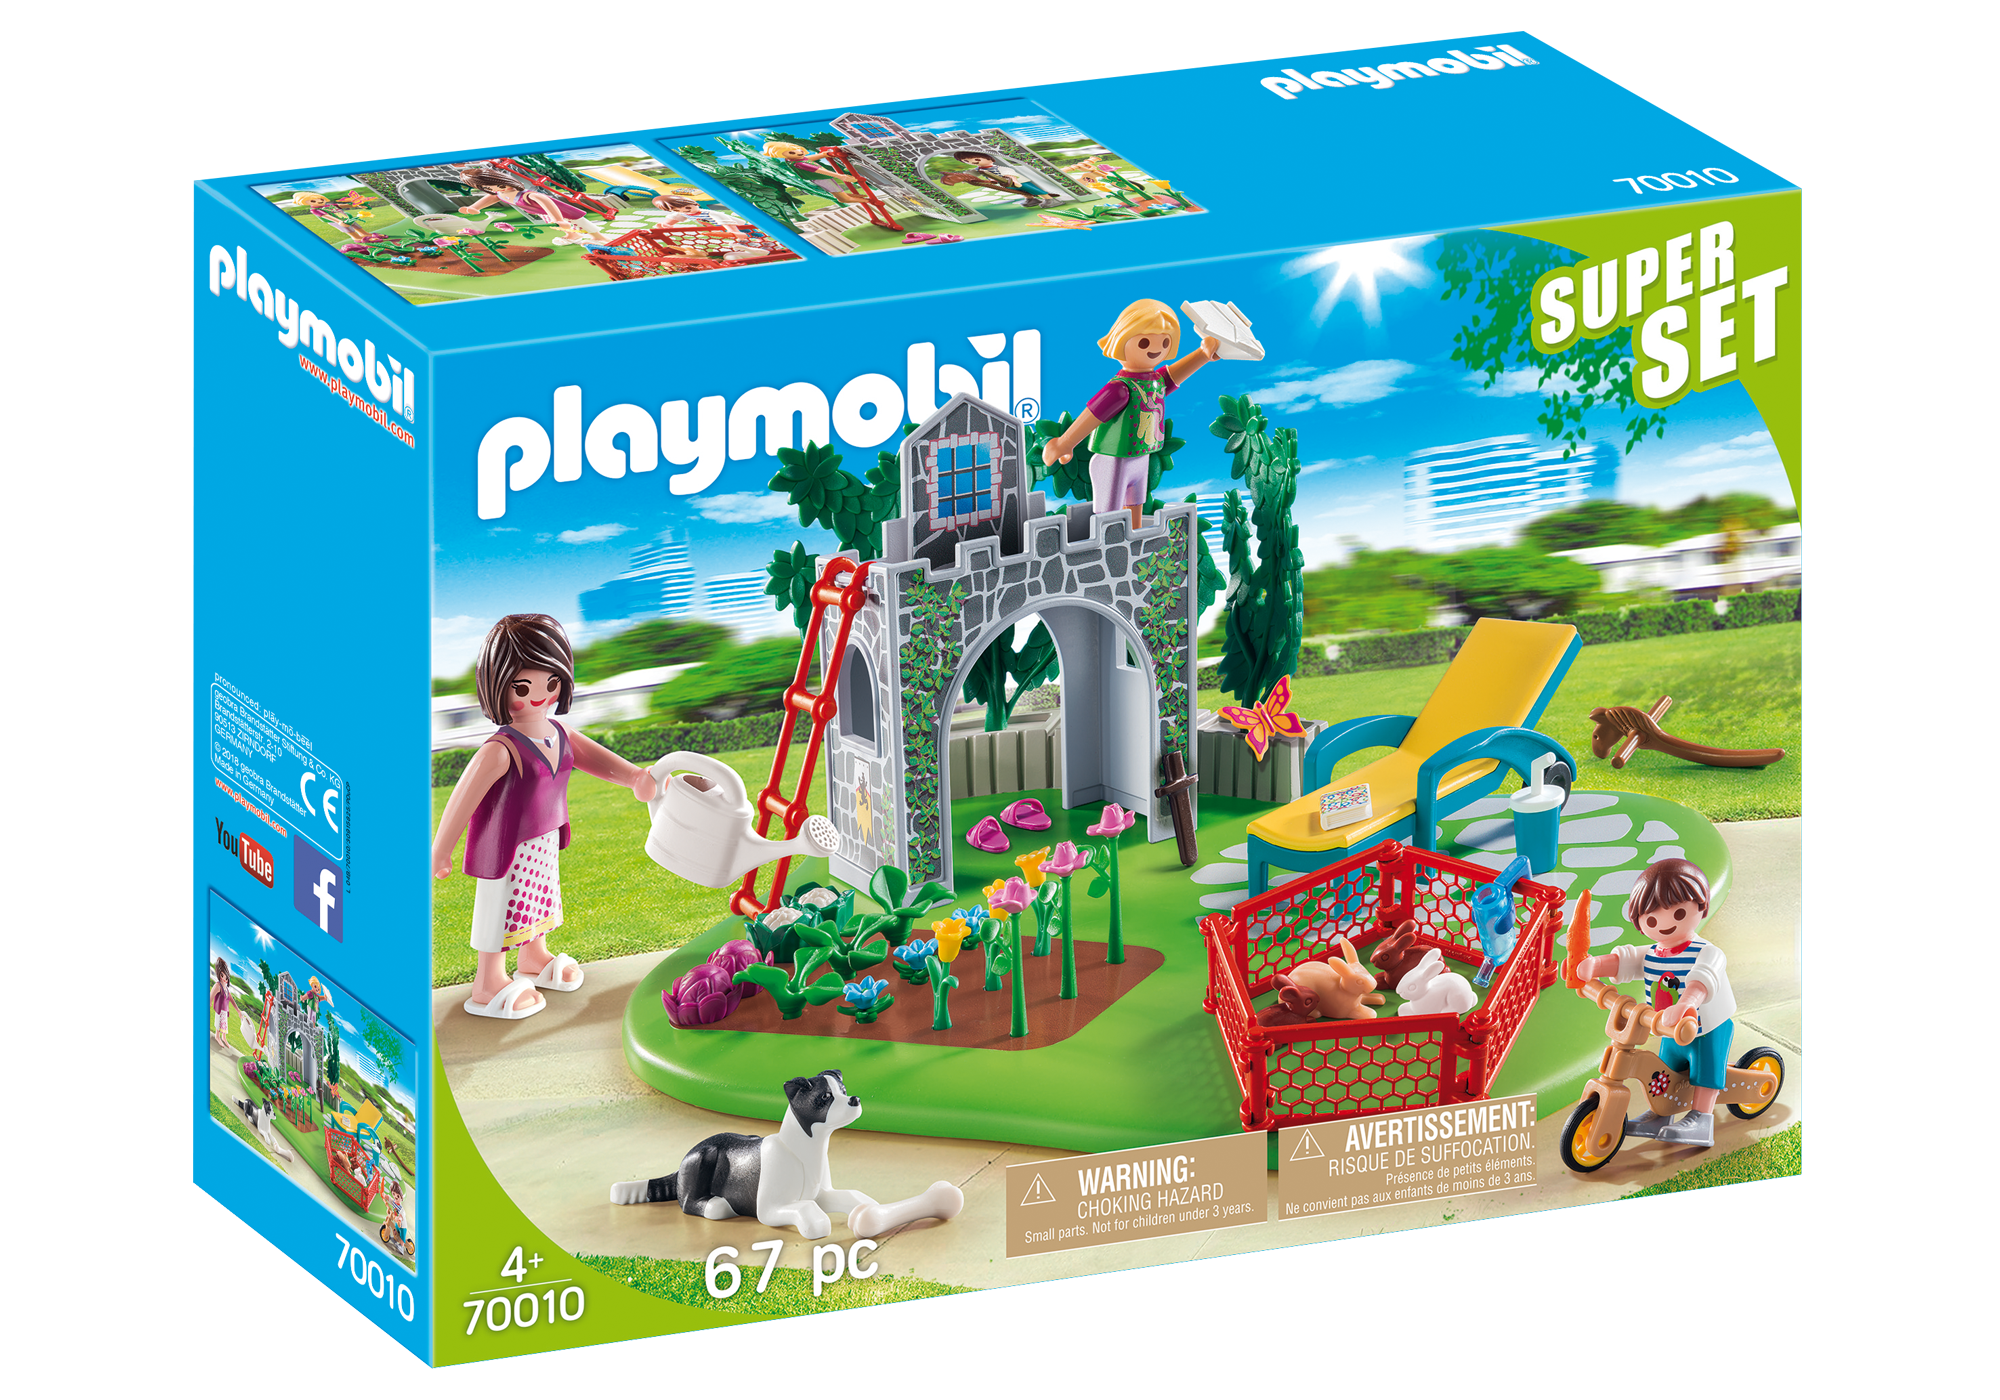 http://media.playmobil.com/i/playmobil/70010_product_box_front/SuperSet Family Garden